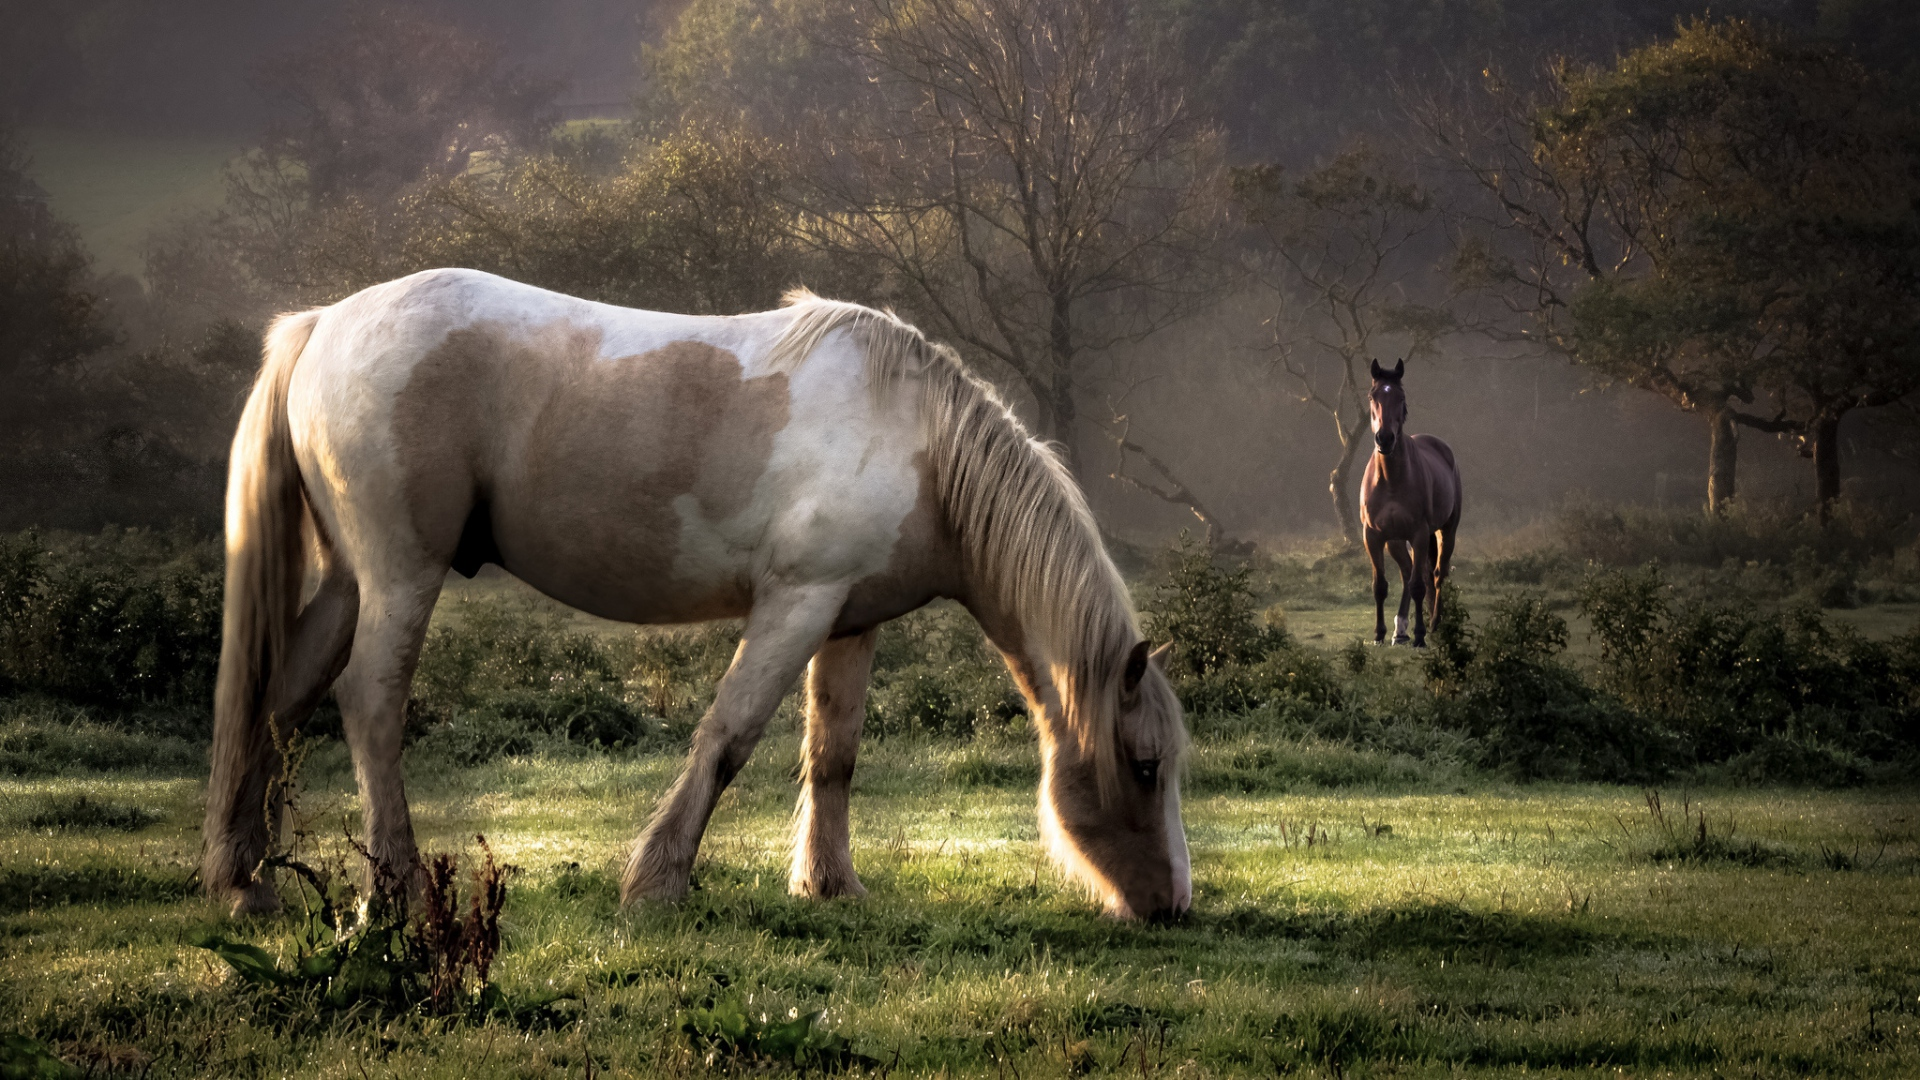 Great Wallpaper Horse Couple - horses_grass_couple_walking_eating_trees_59687_1920x1080  You Should Have_754815.jpg